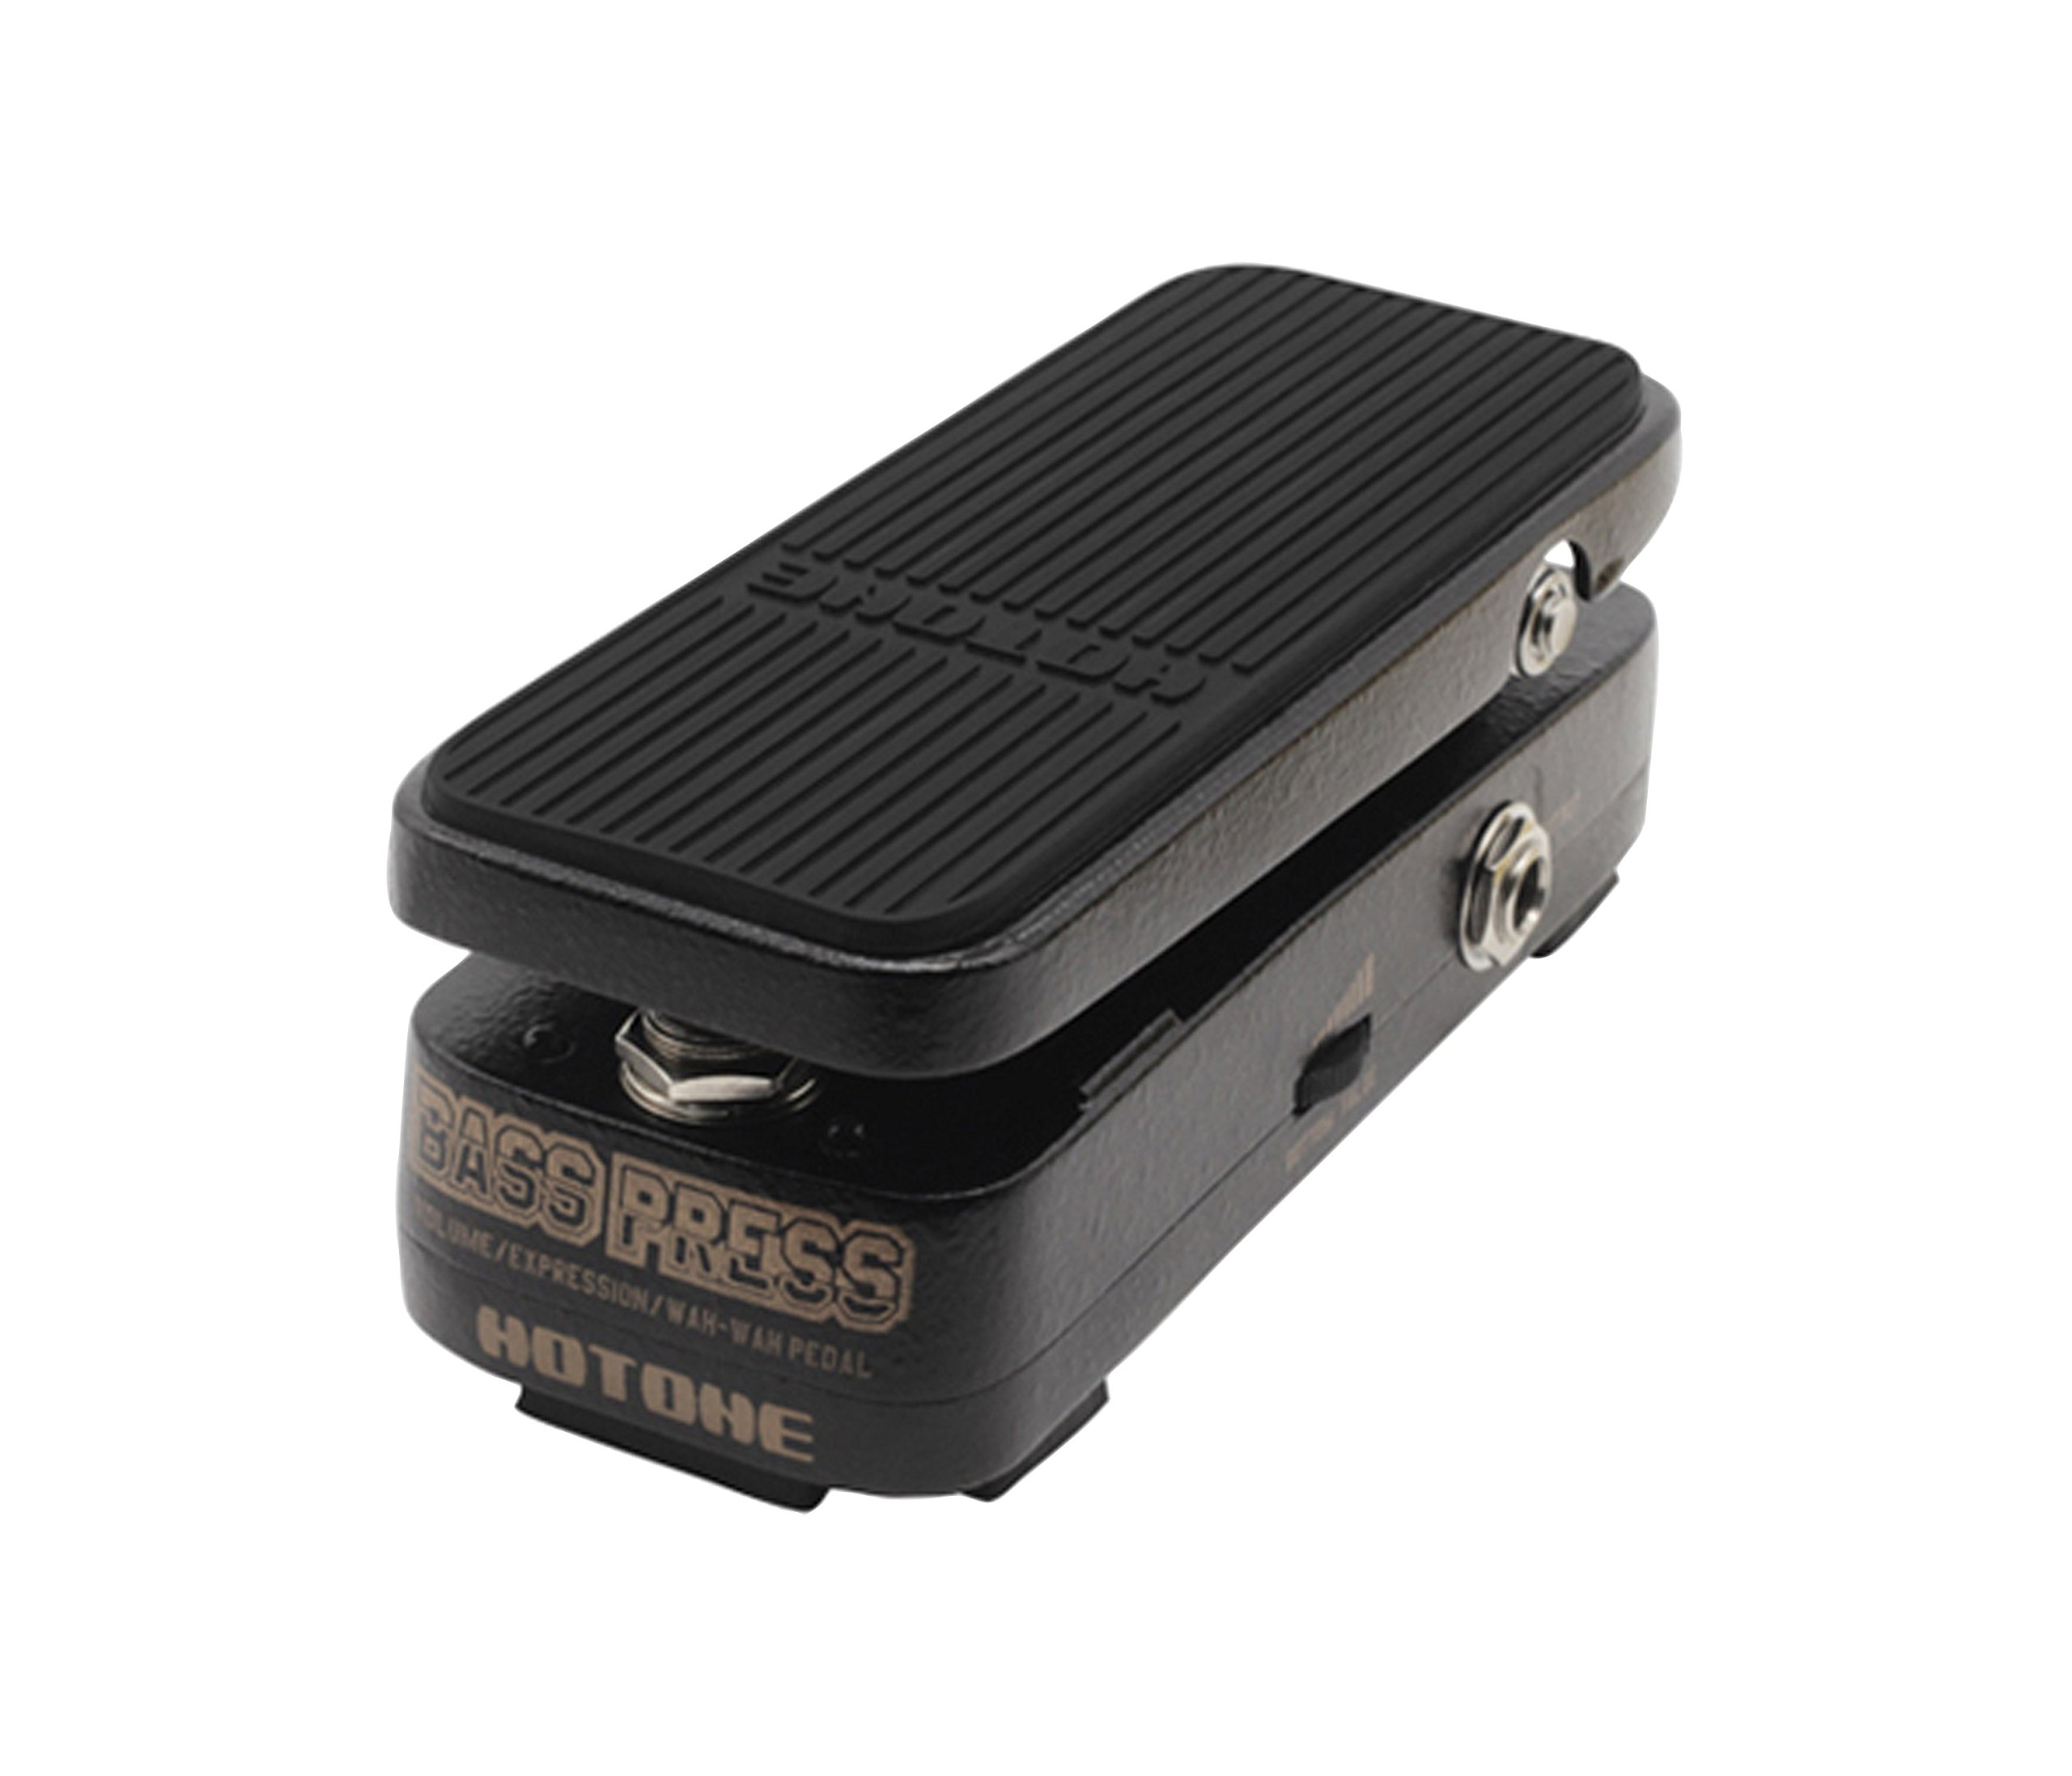 Hotone Audio BP-10 Bass Press 3 in 1 Vol/Wah/Expression Bass Guitar Effects Pedal by Hotone Audio